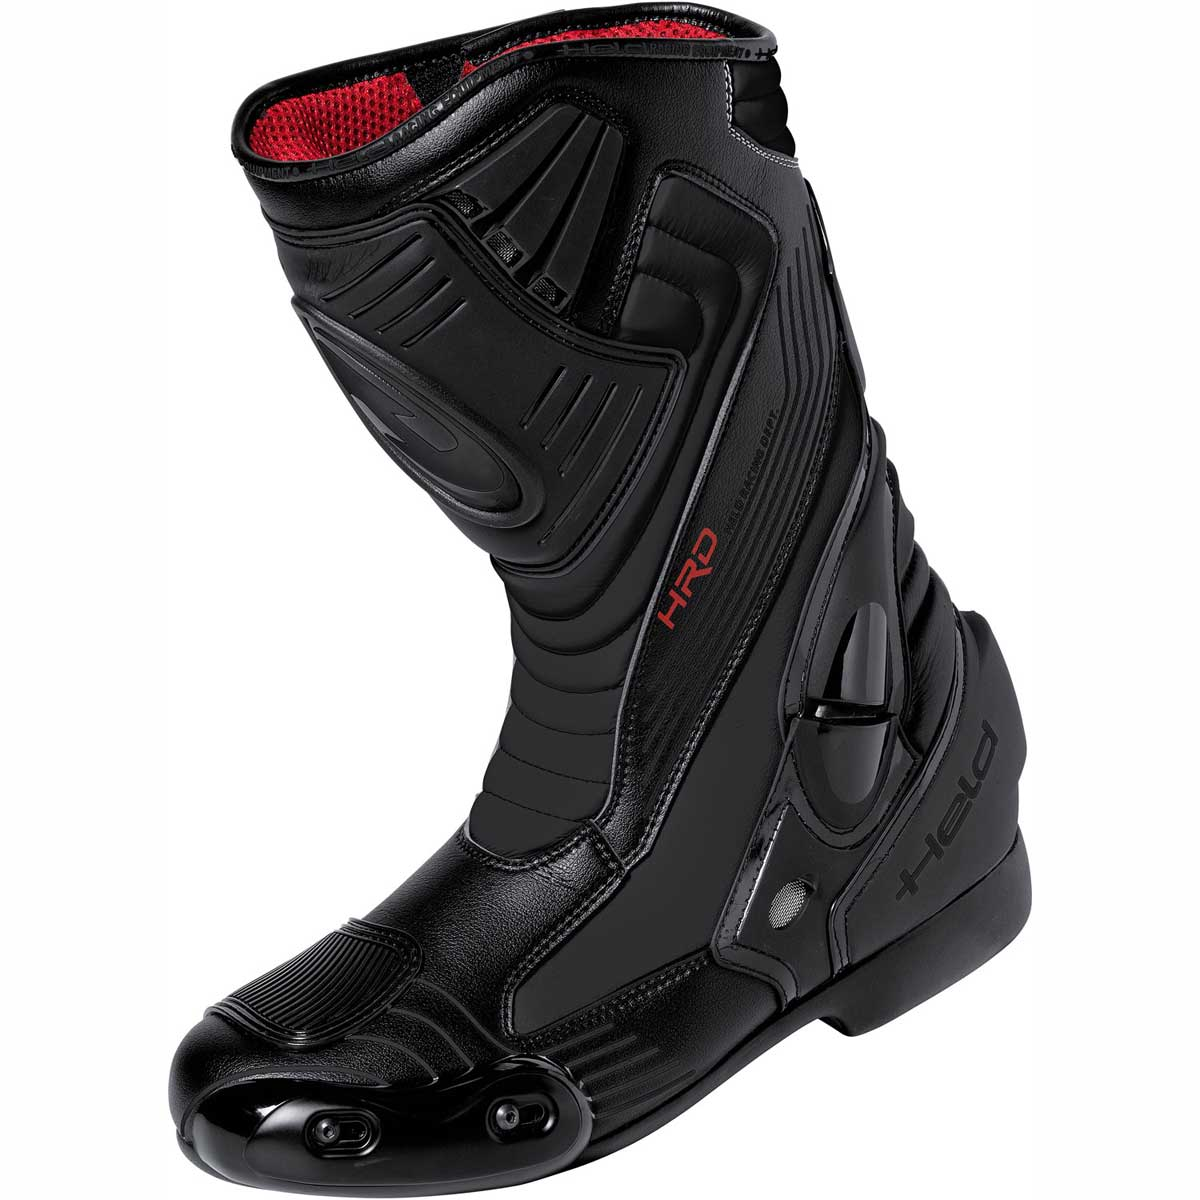 The Held Epco Tex 8422 Boots: Top 10 Best Sportsbike & Racing Motorcycle Boot